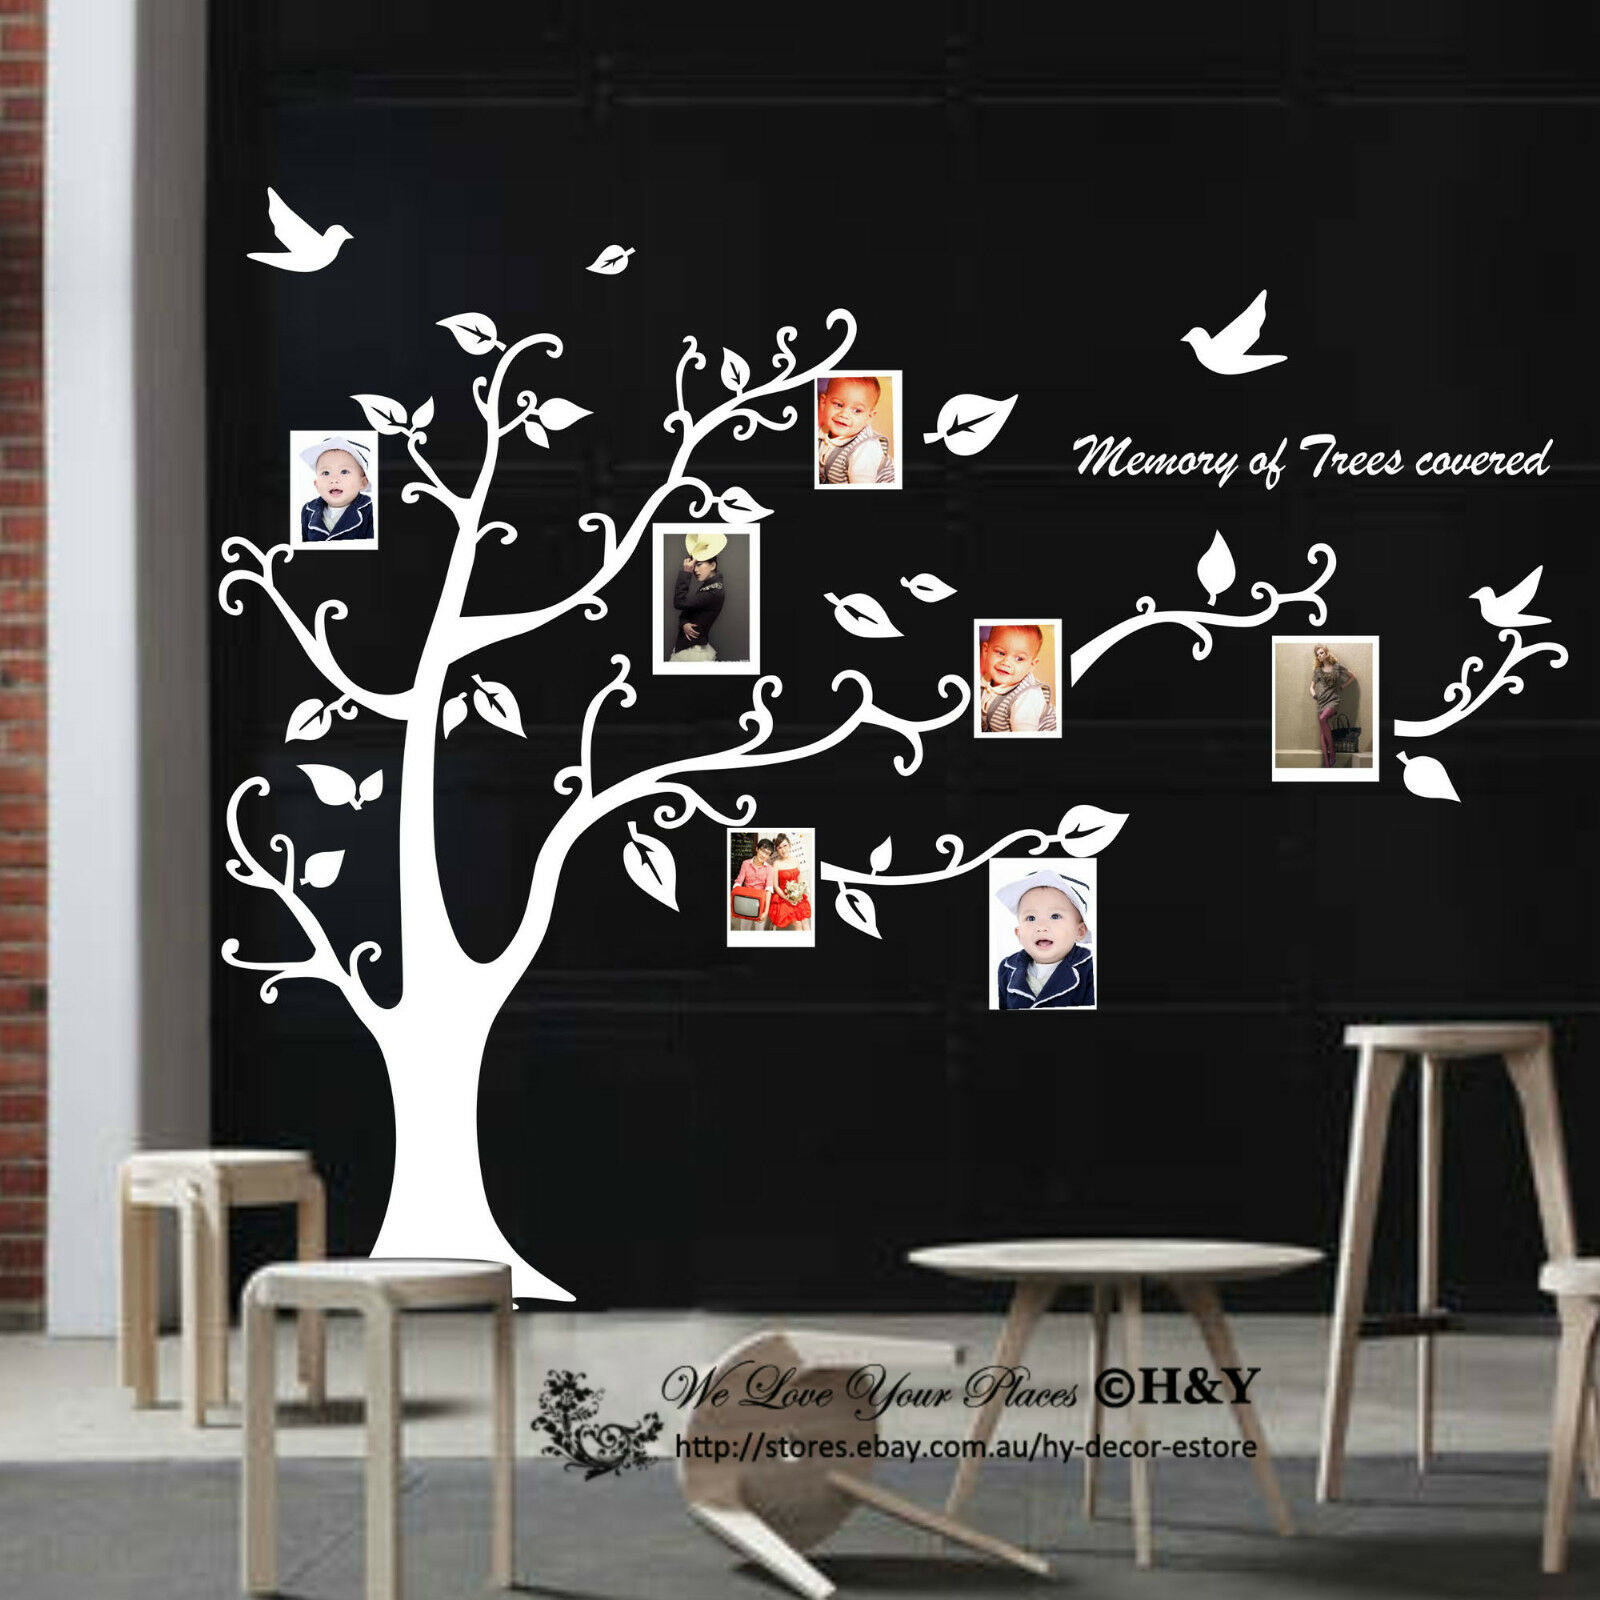 photo picture tree frame set wall art stickers vinyl decals mural size large h 115 cm x w 130 cm typesetting w 60 x h 120 cm